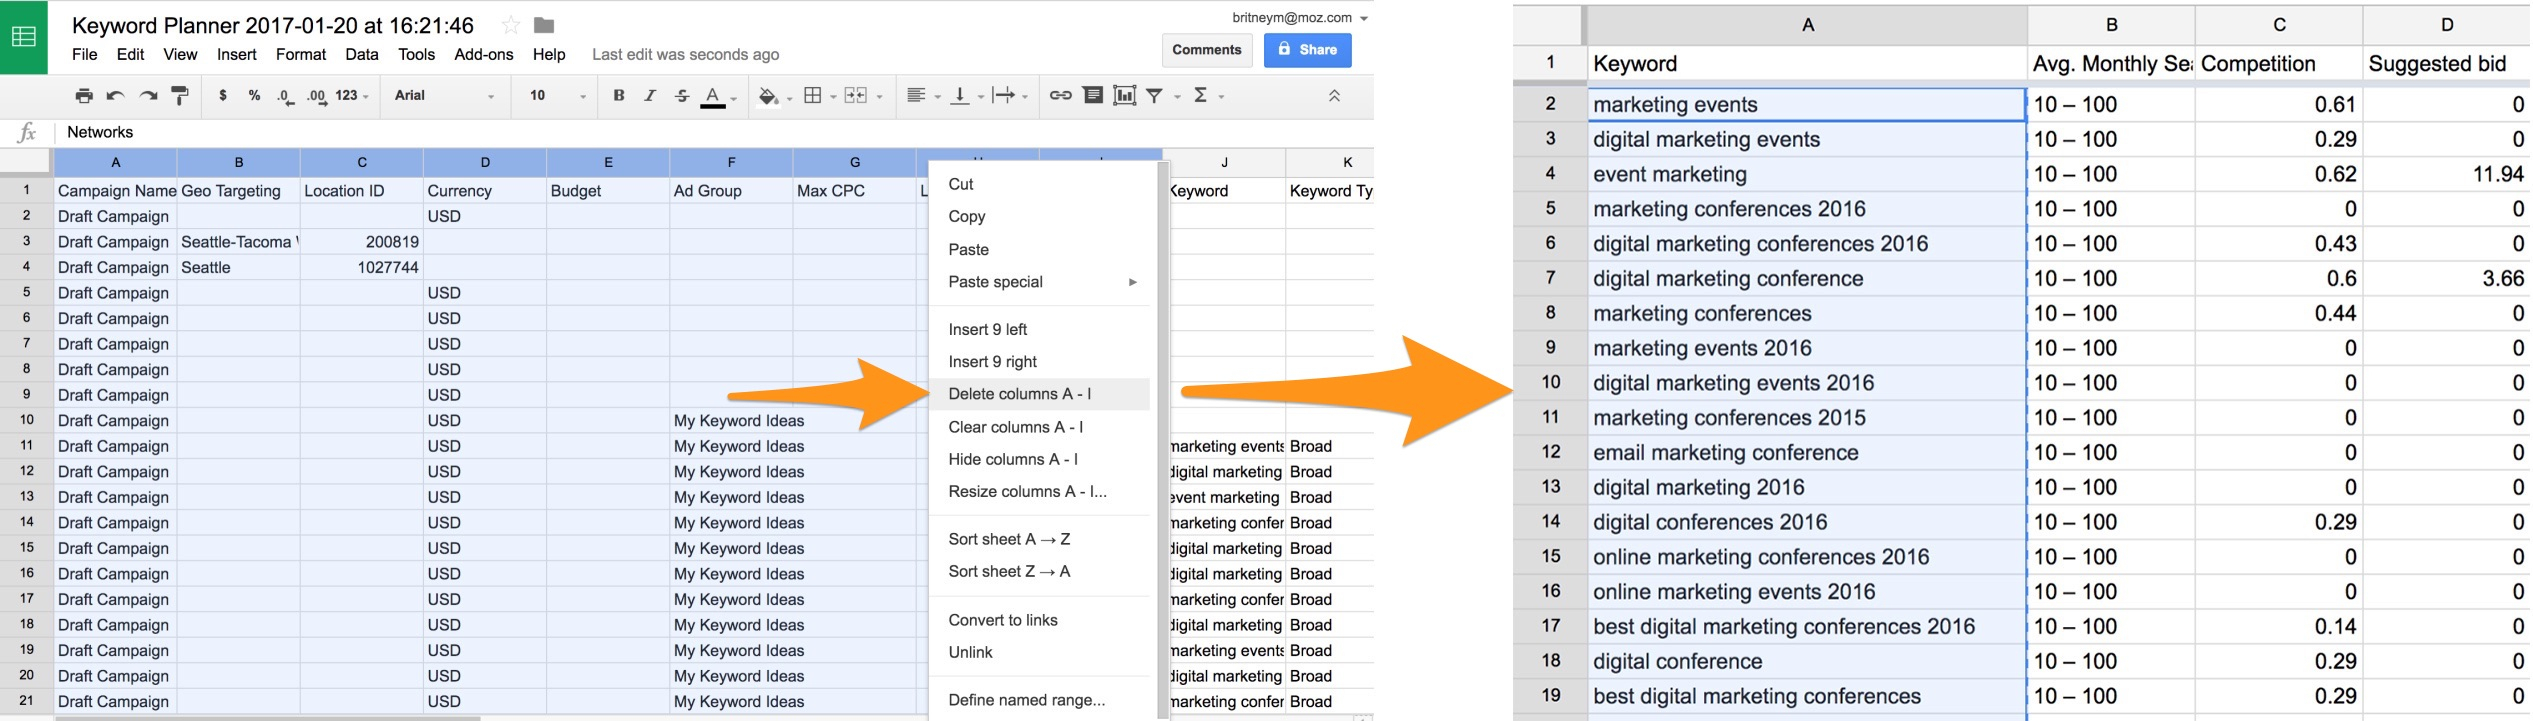 Finding Keywords That Will Boost Your Event's Seo - Eventbrite for KeywordAverage MonthlysearchesArticleKeyword Tags